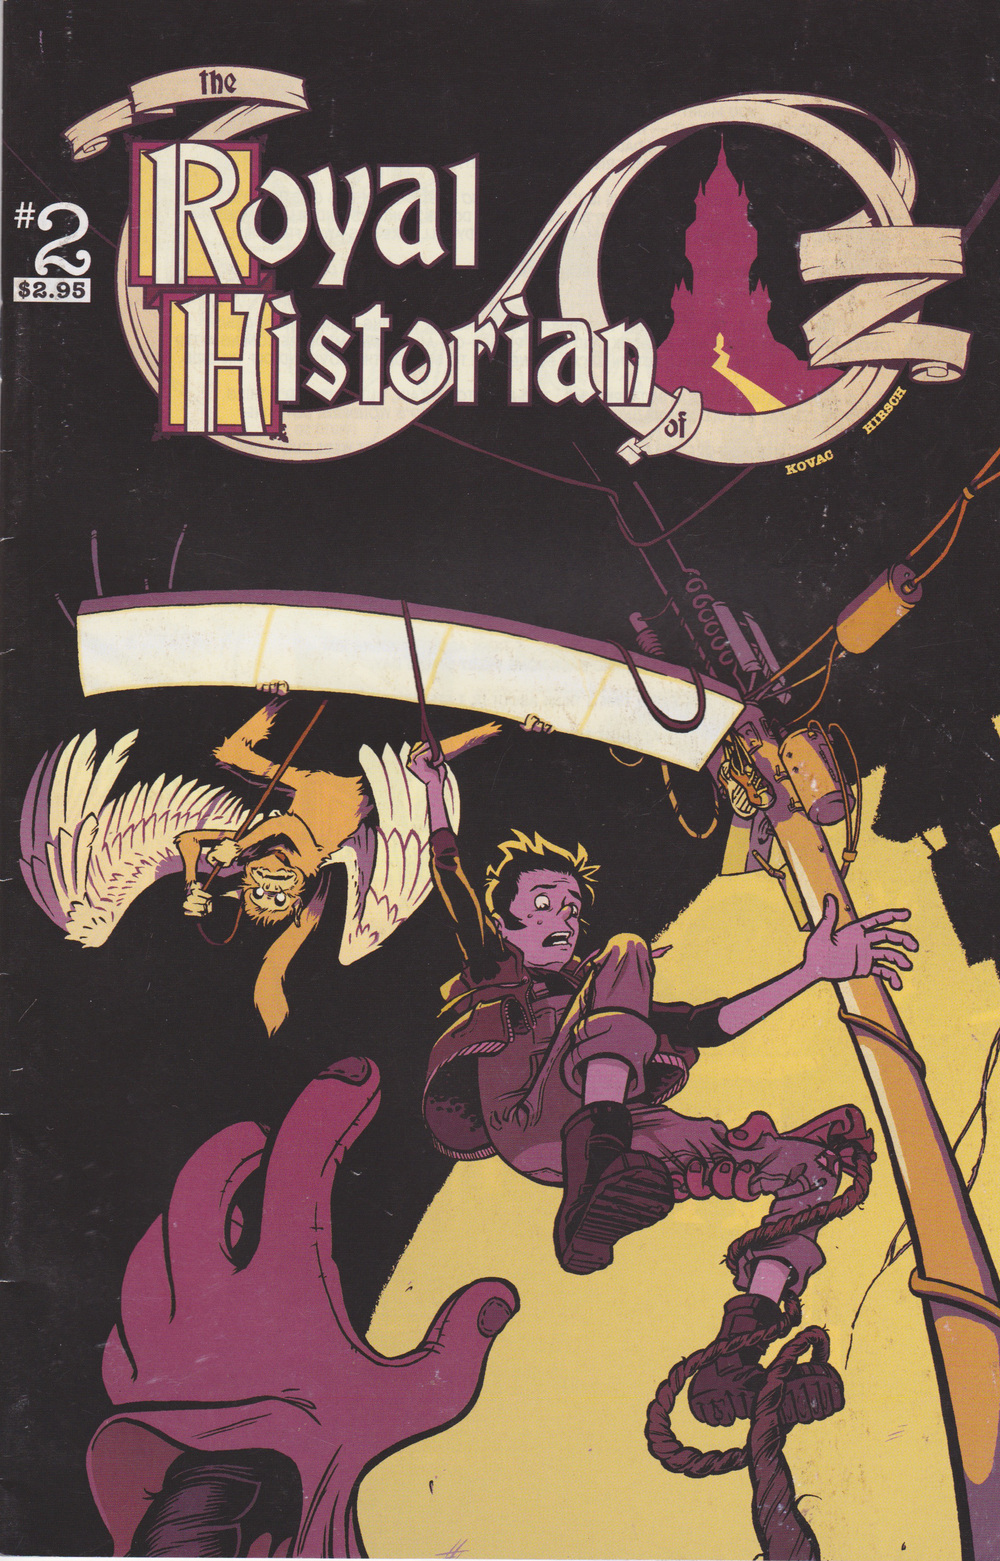 Royal Historian of Oz issue #2